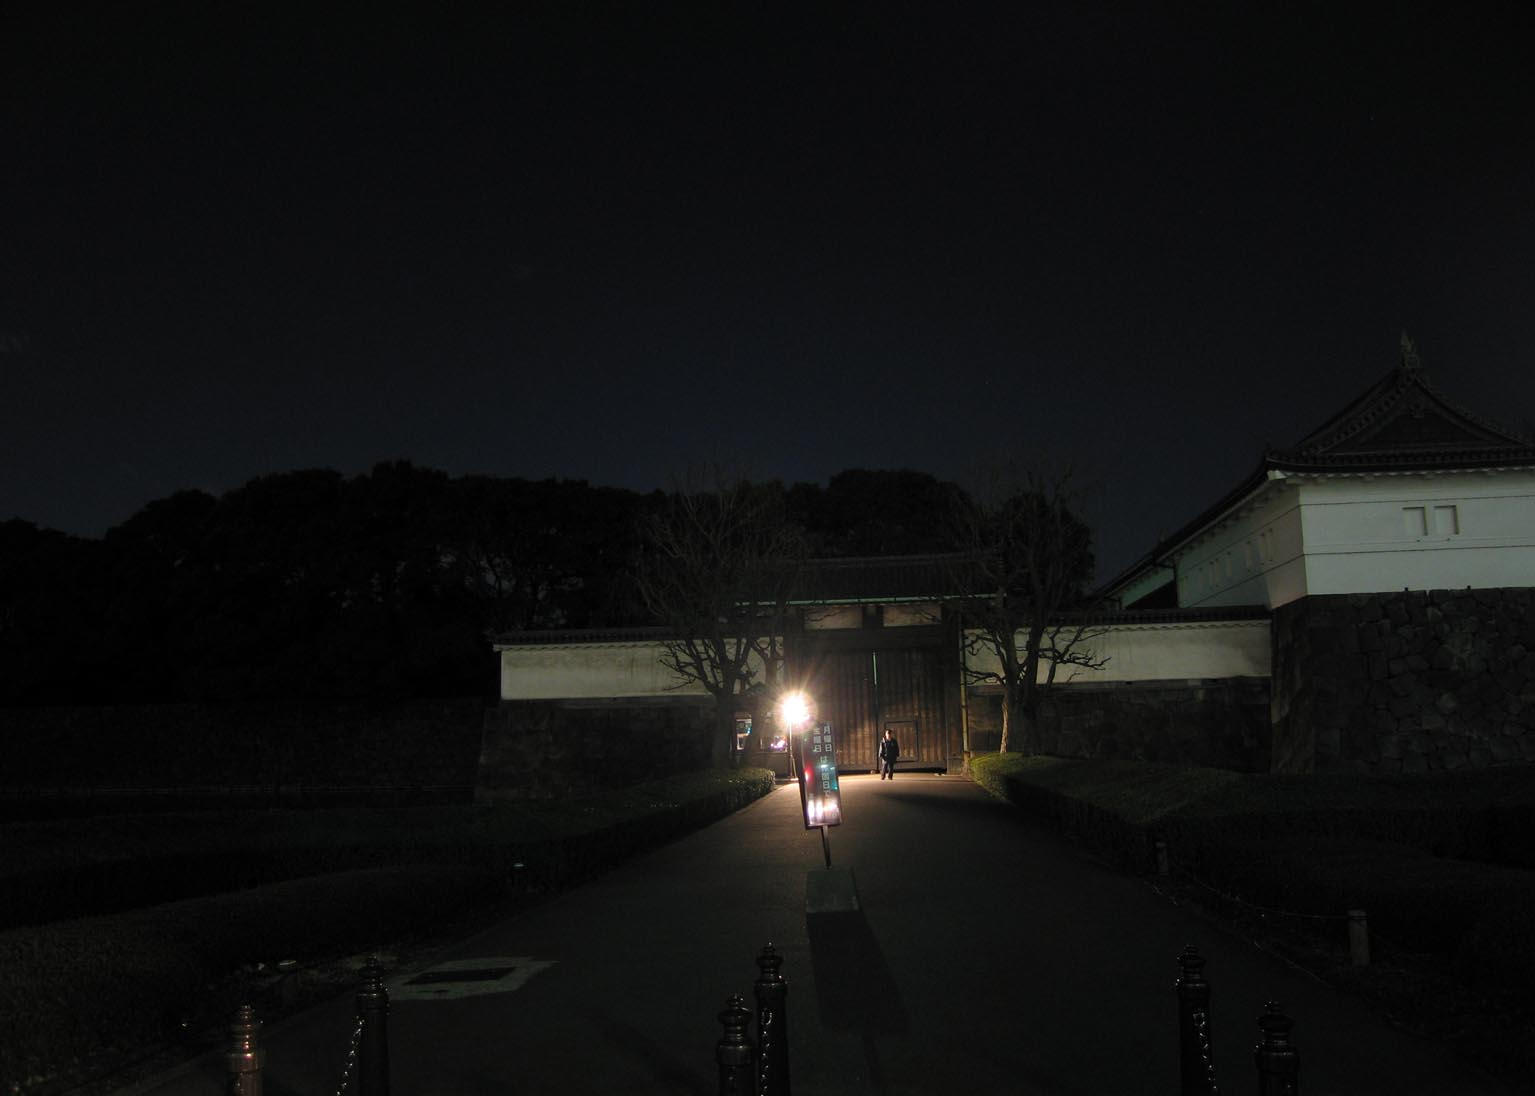 Imperial Palace: The Last Refuge of Darkness in Tokyo